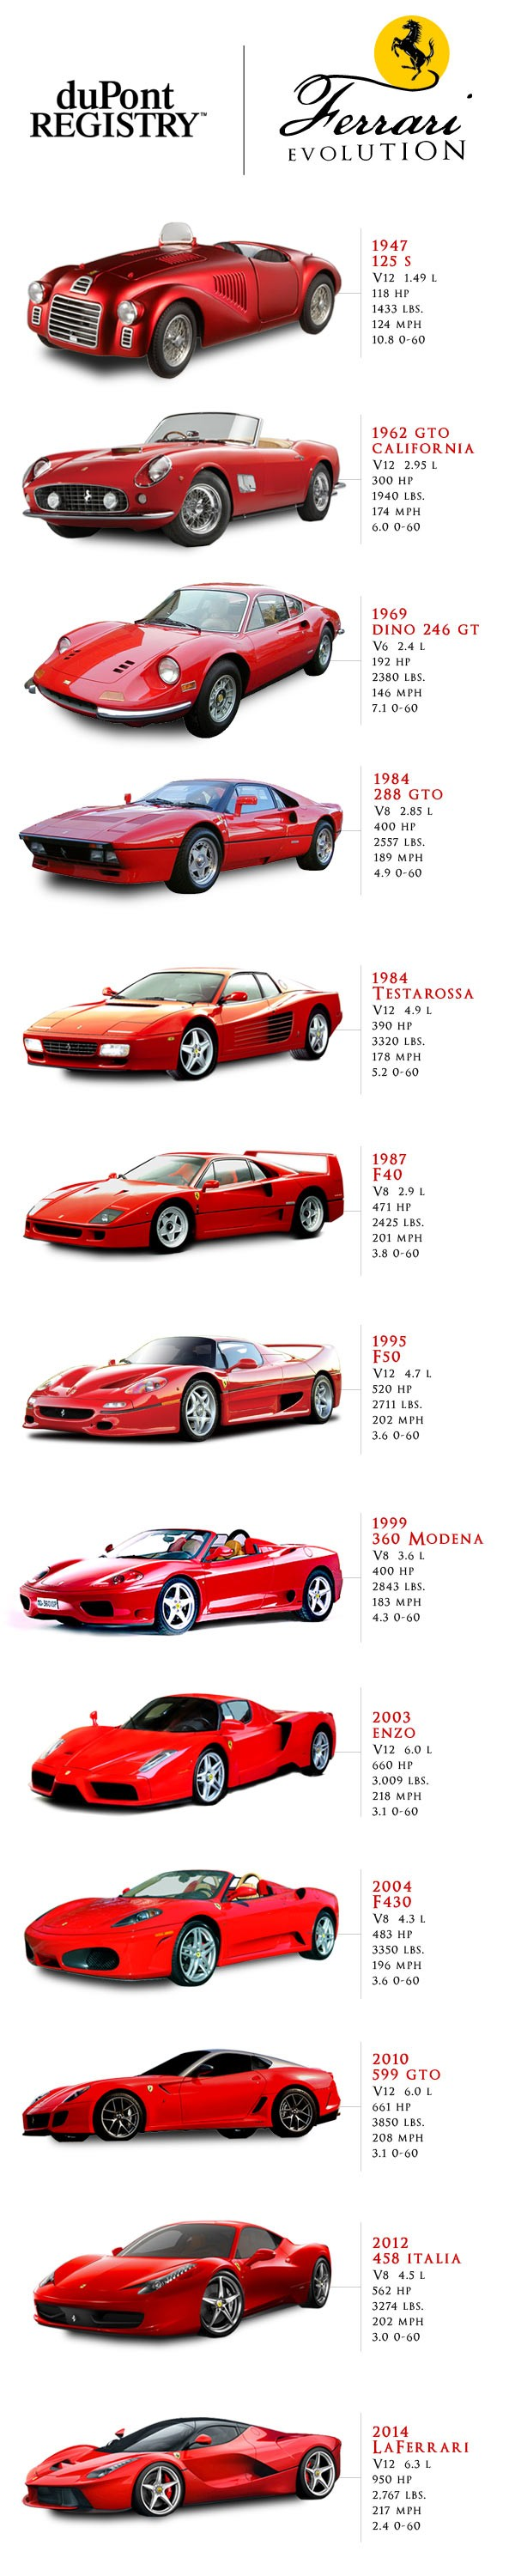 ferrari_evoluation_infographic